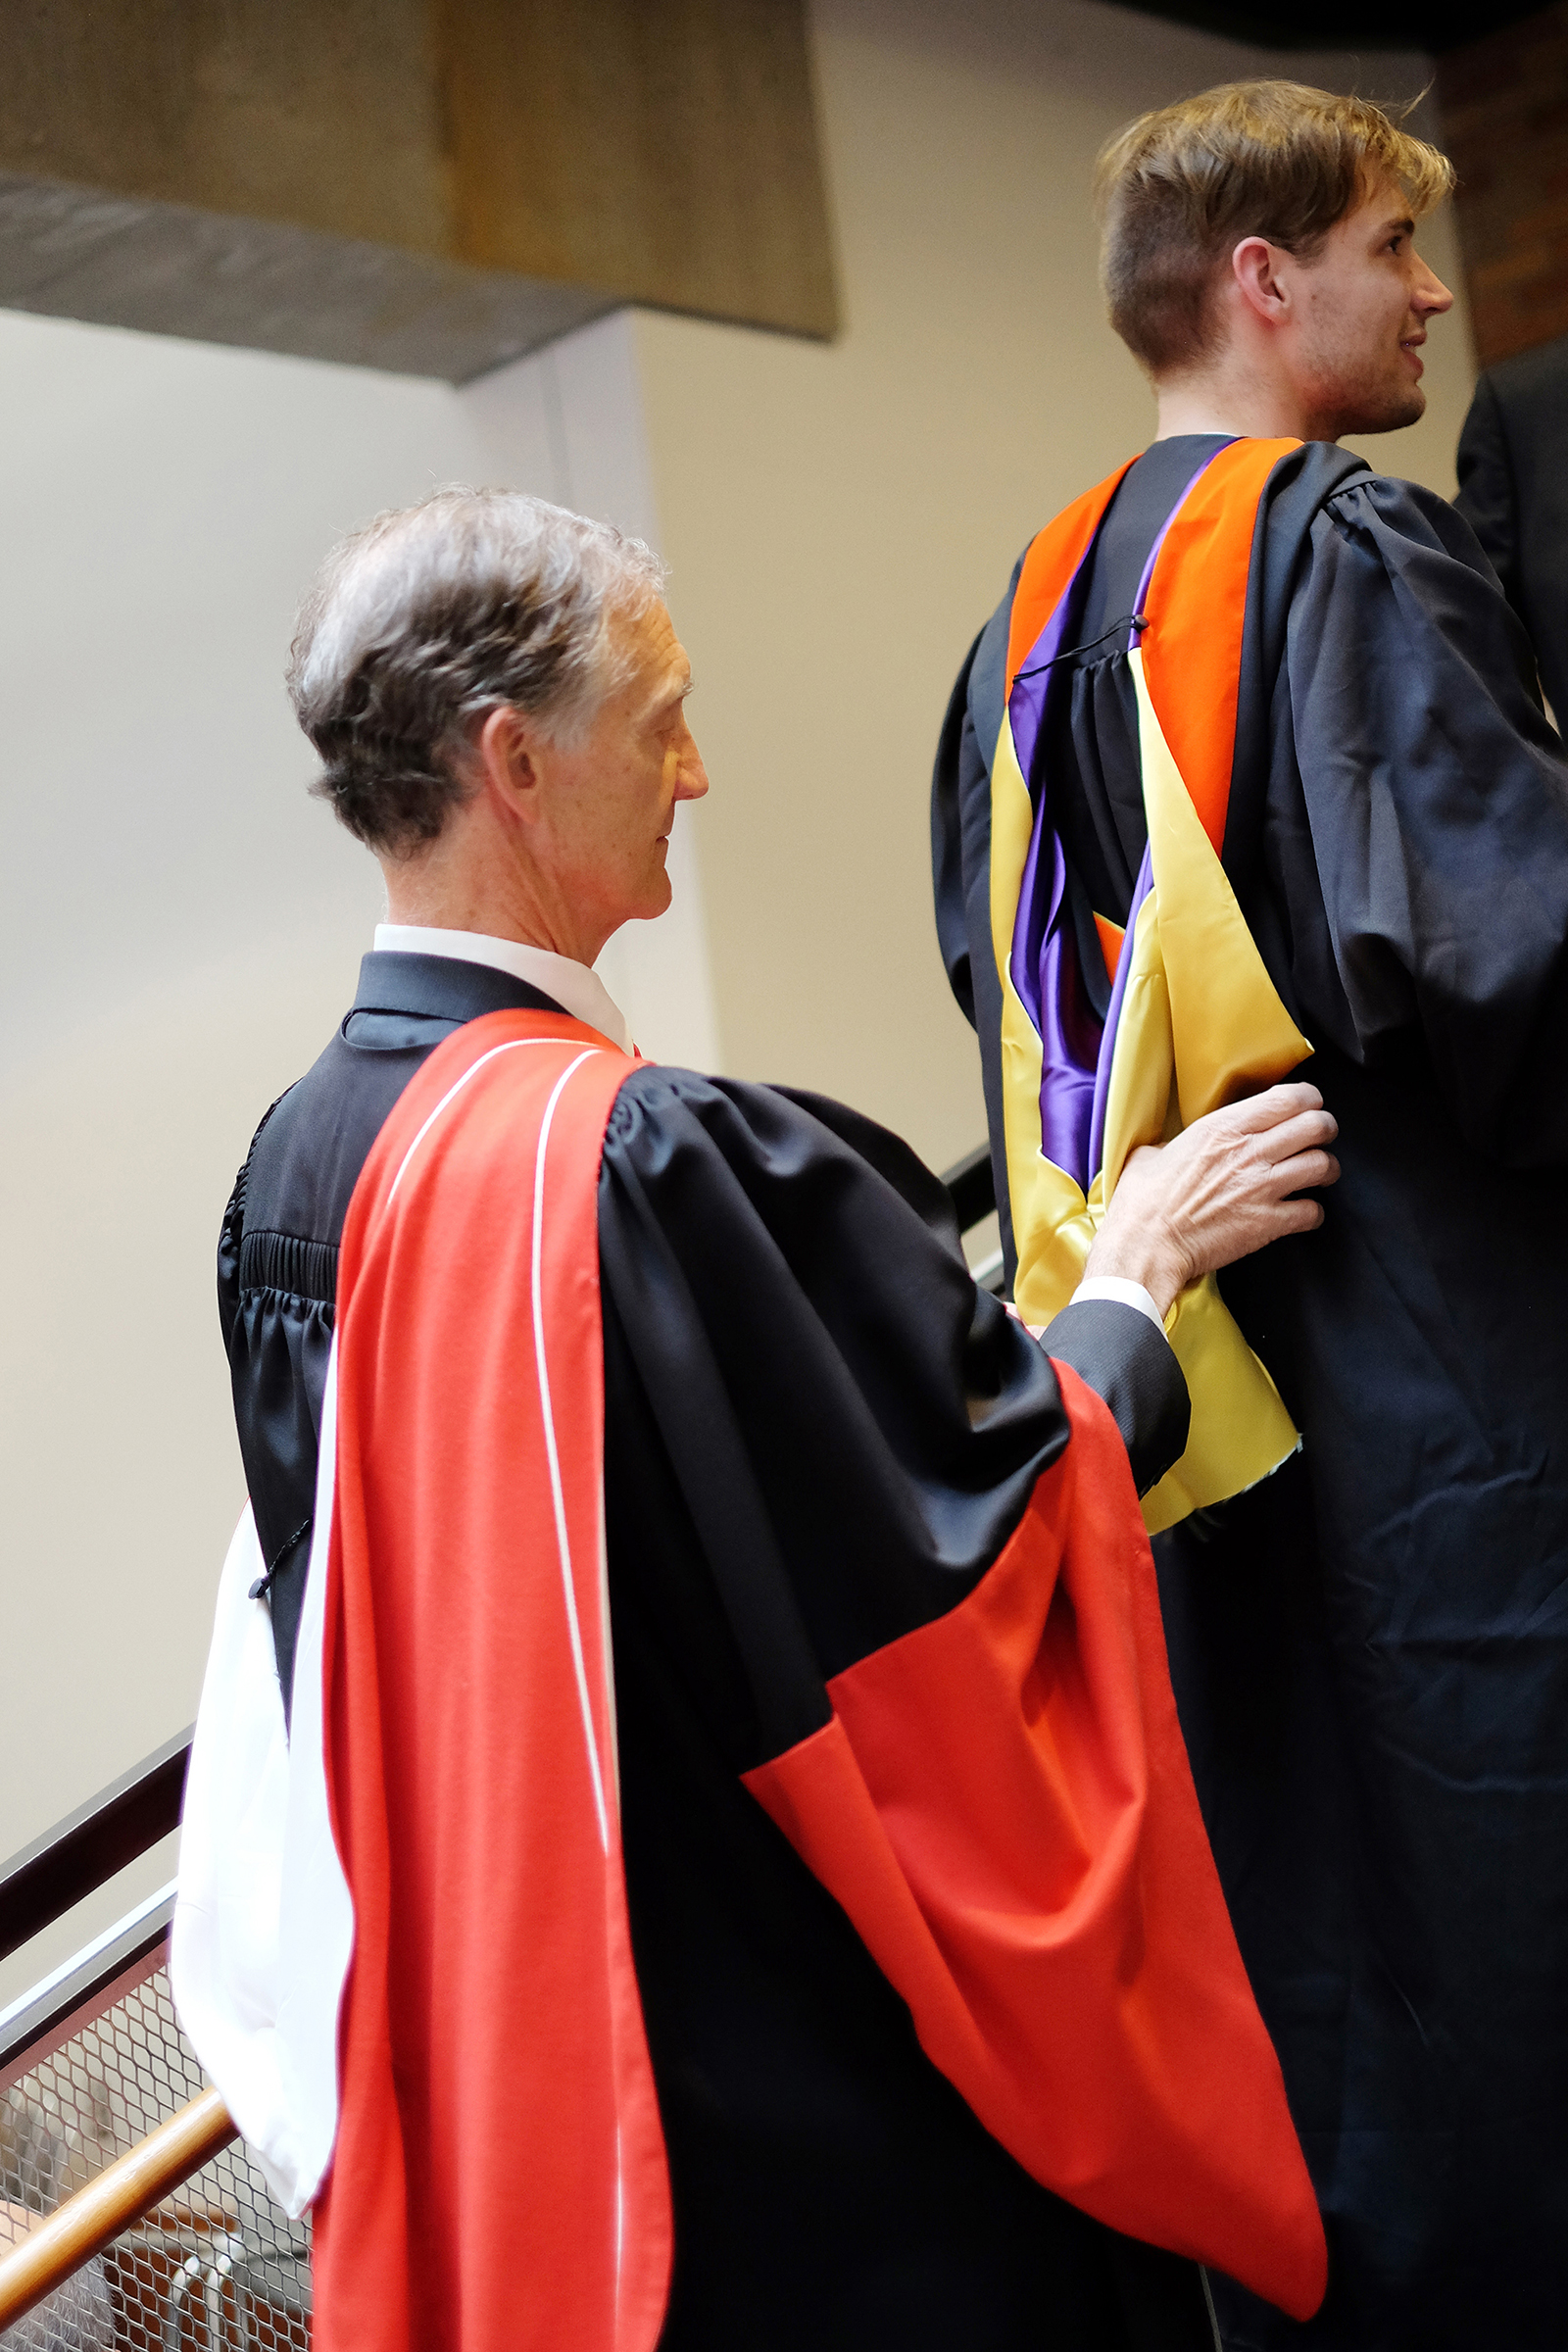 A faculty member assists a new graduate with his hood